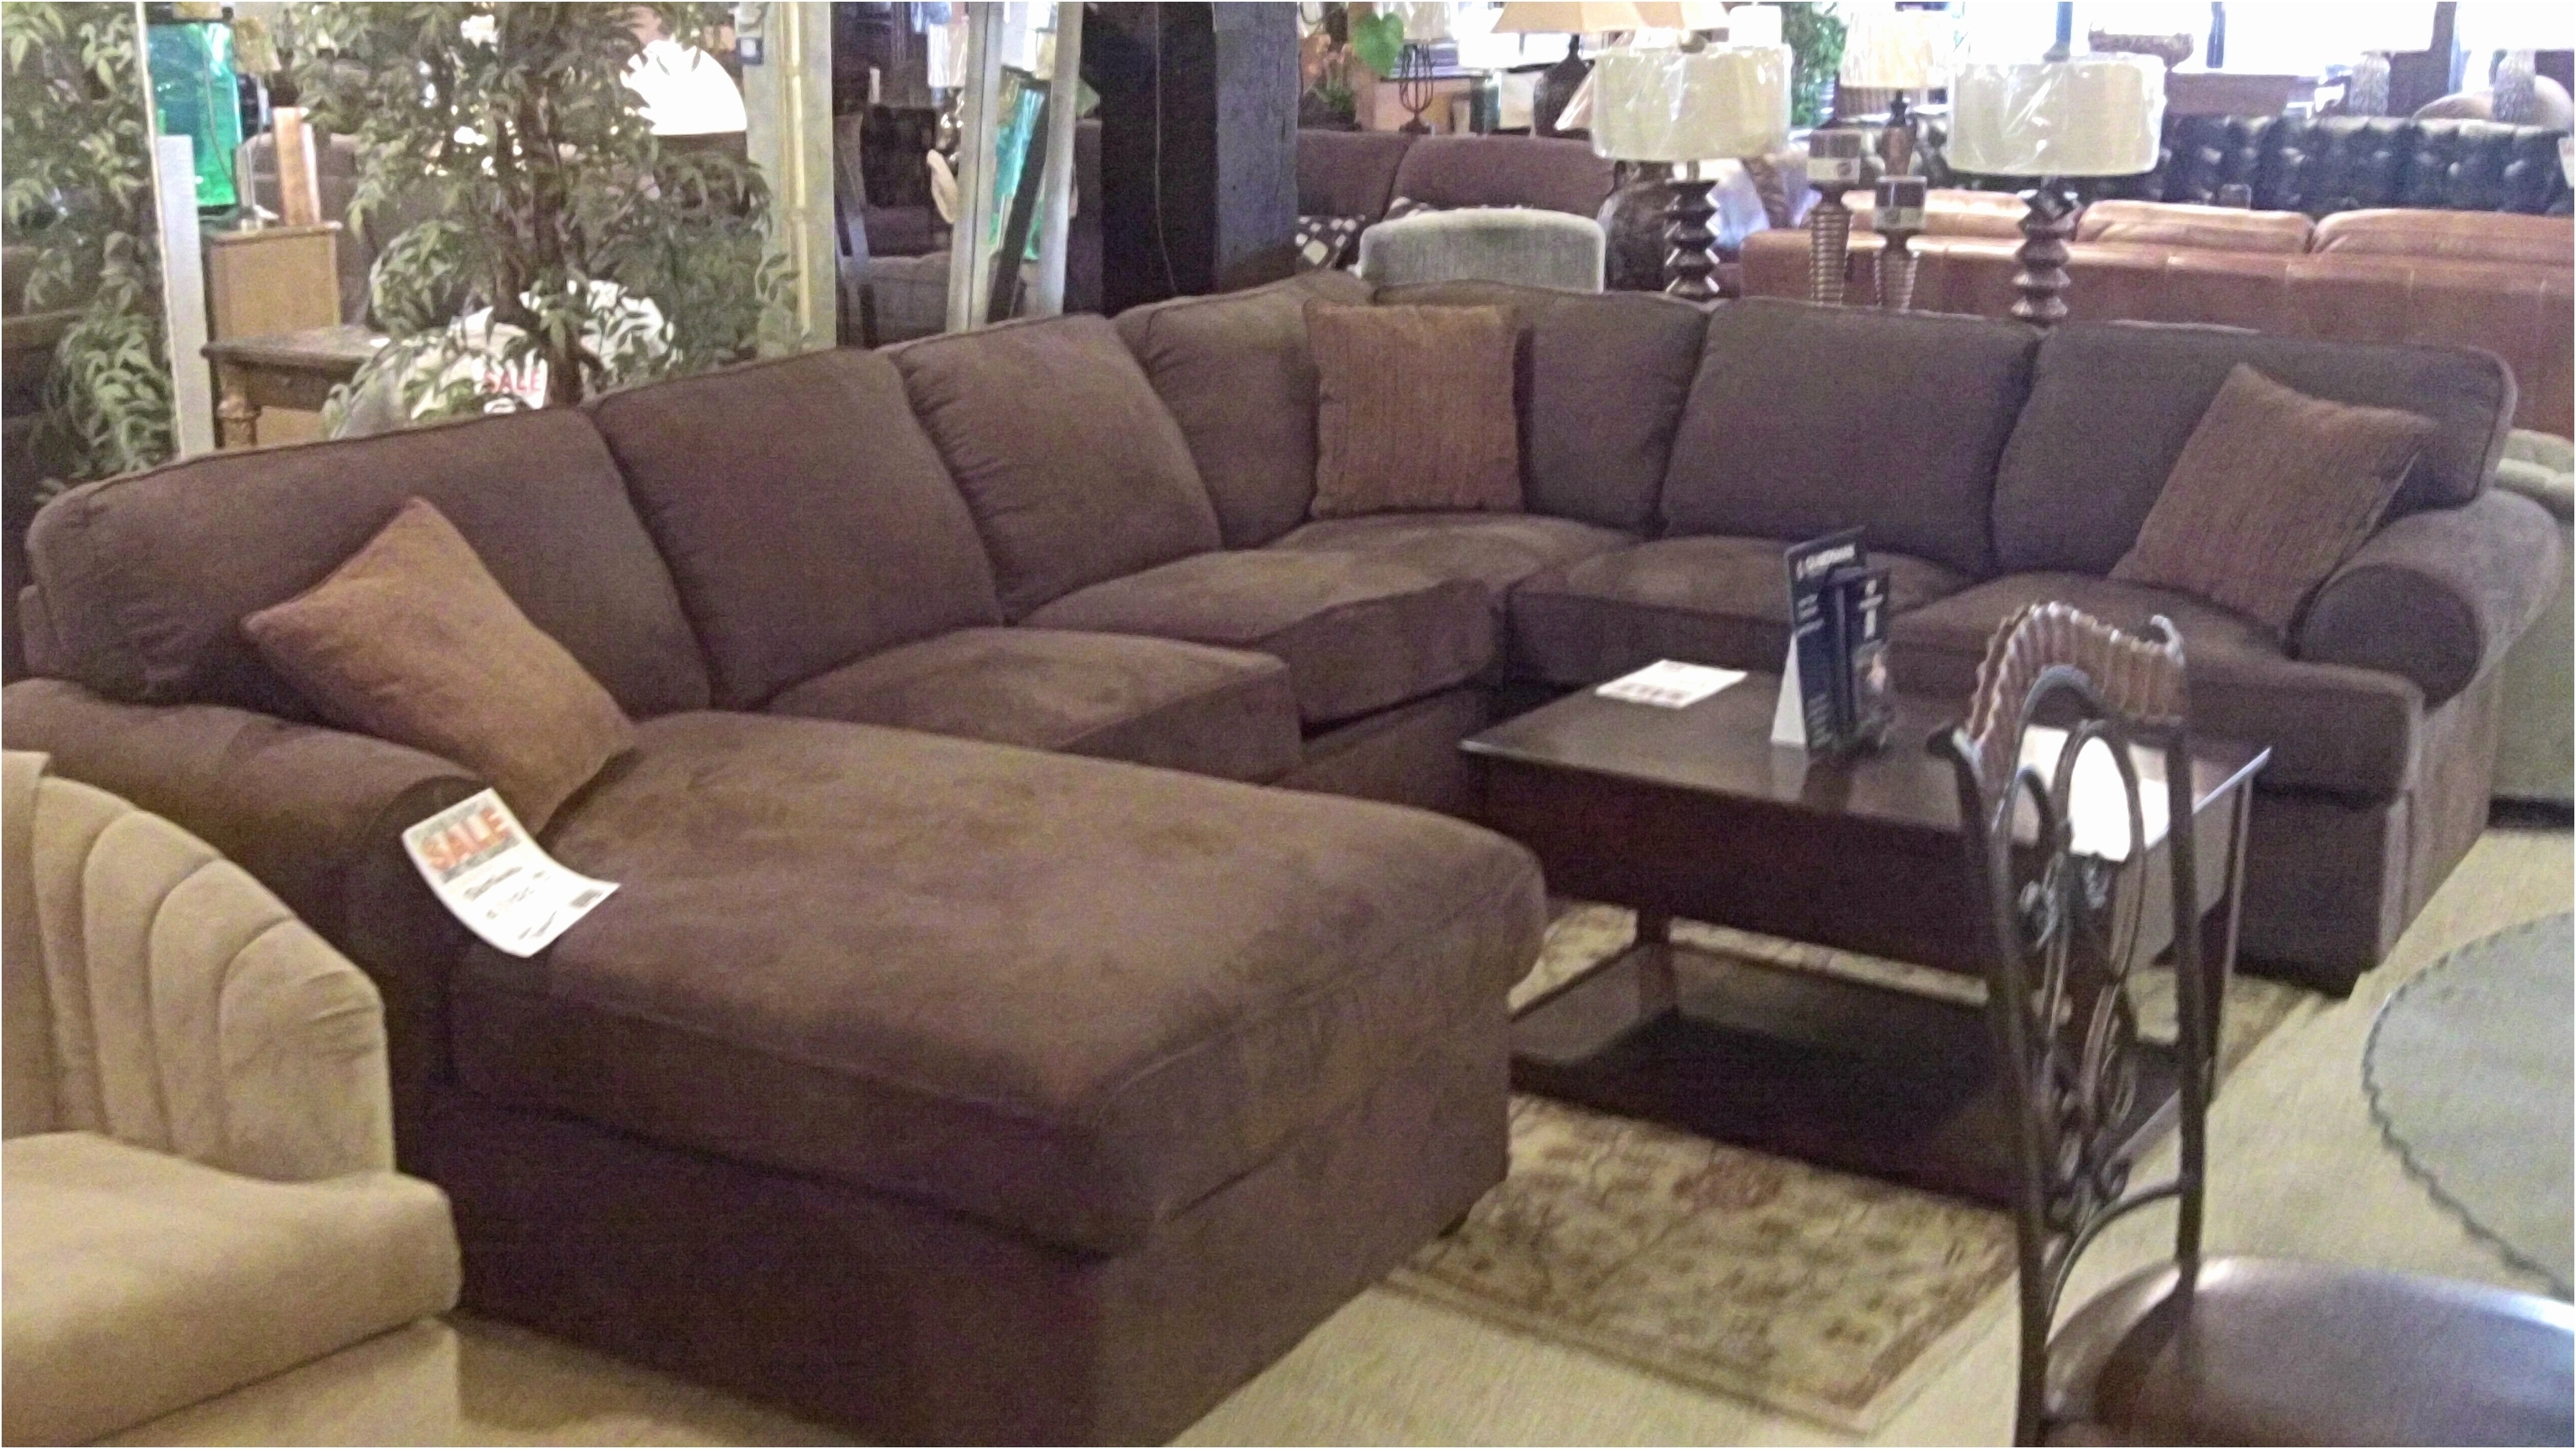 High Quality Sectional Sofas For Recent Inspirational High Quality Sectional Sofa New – Sofa Furnitures (View 11 of 15)